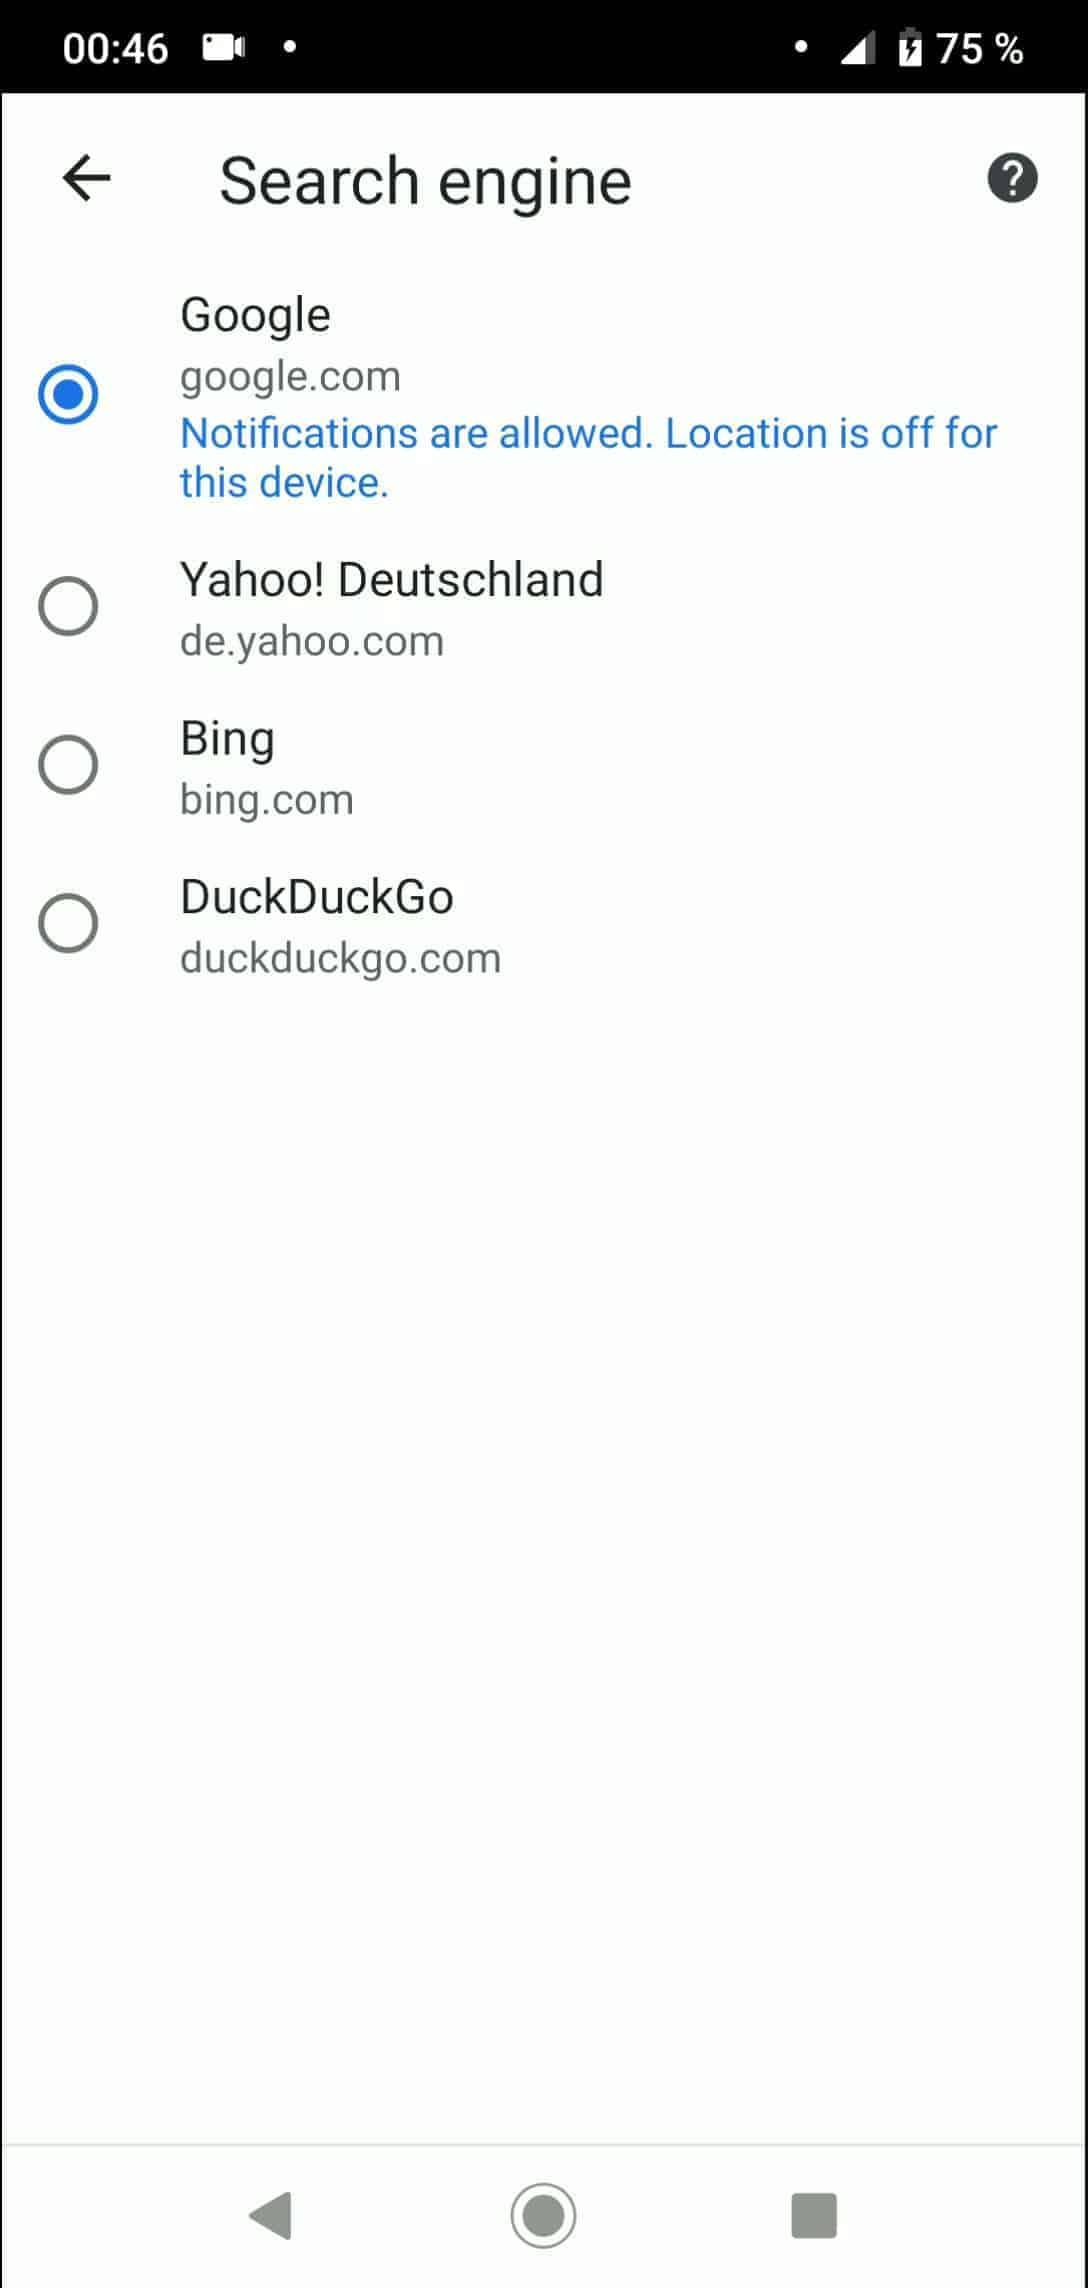 Step 5: Choose a search engine